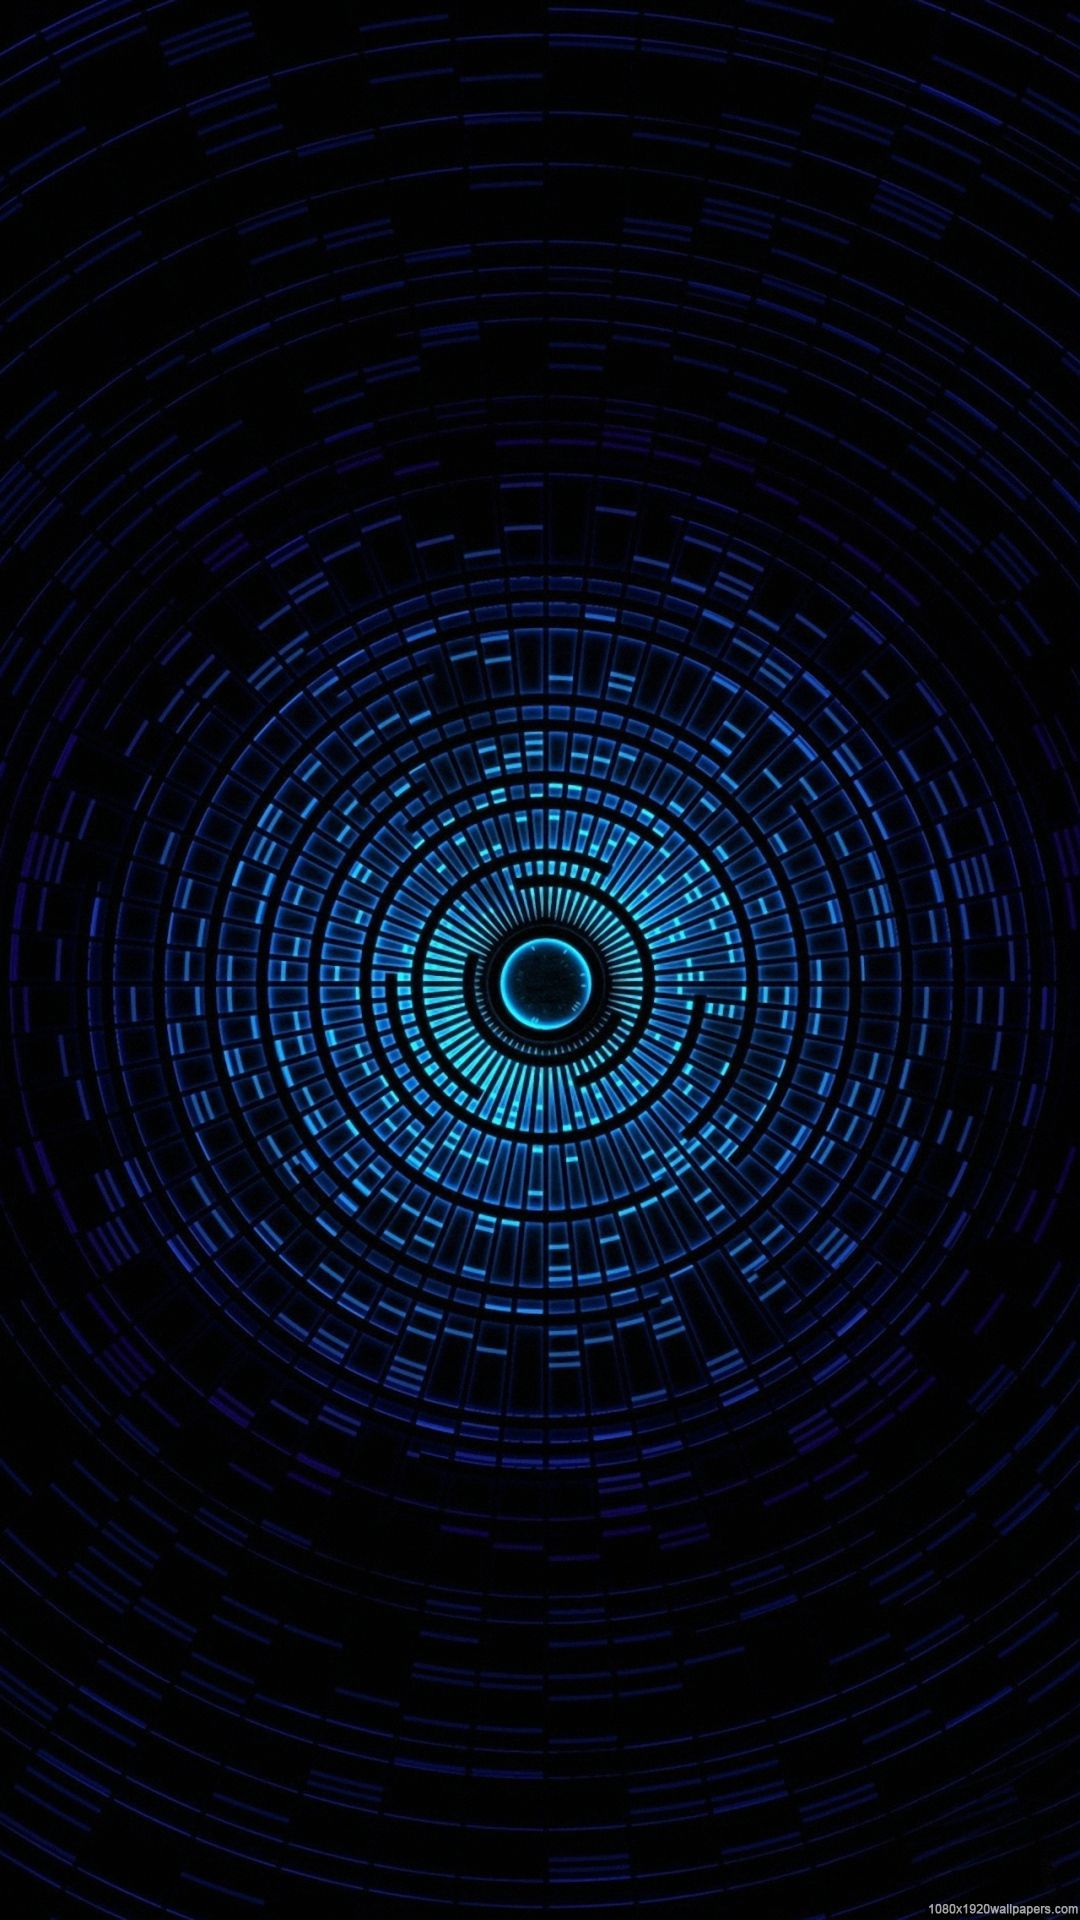 1080x1920 abstract wallpapers HD   1080P abstract wallpapers 1080x1920